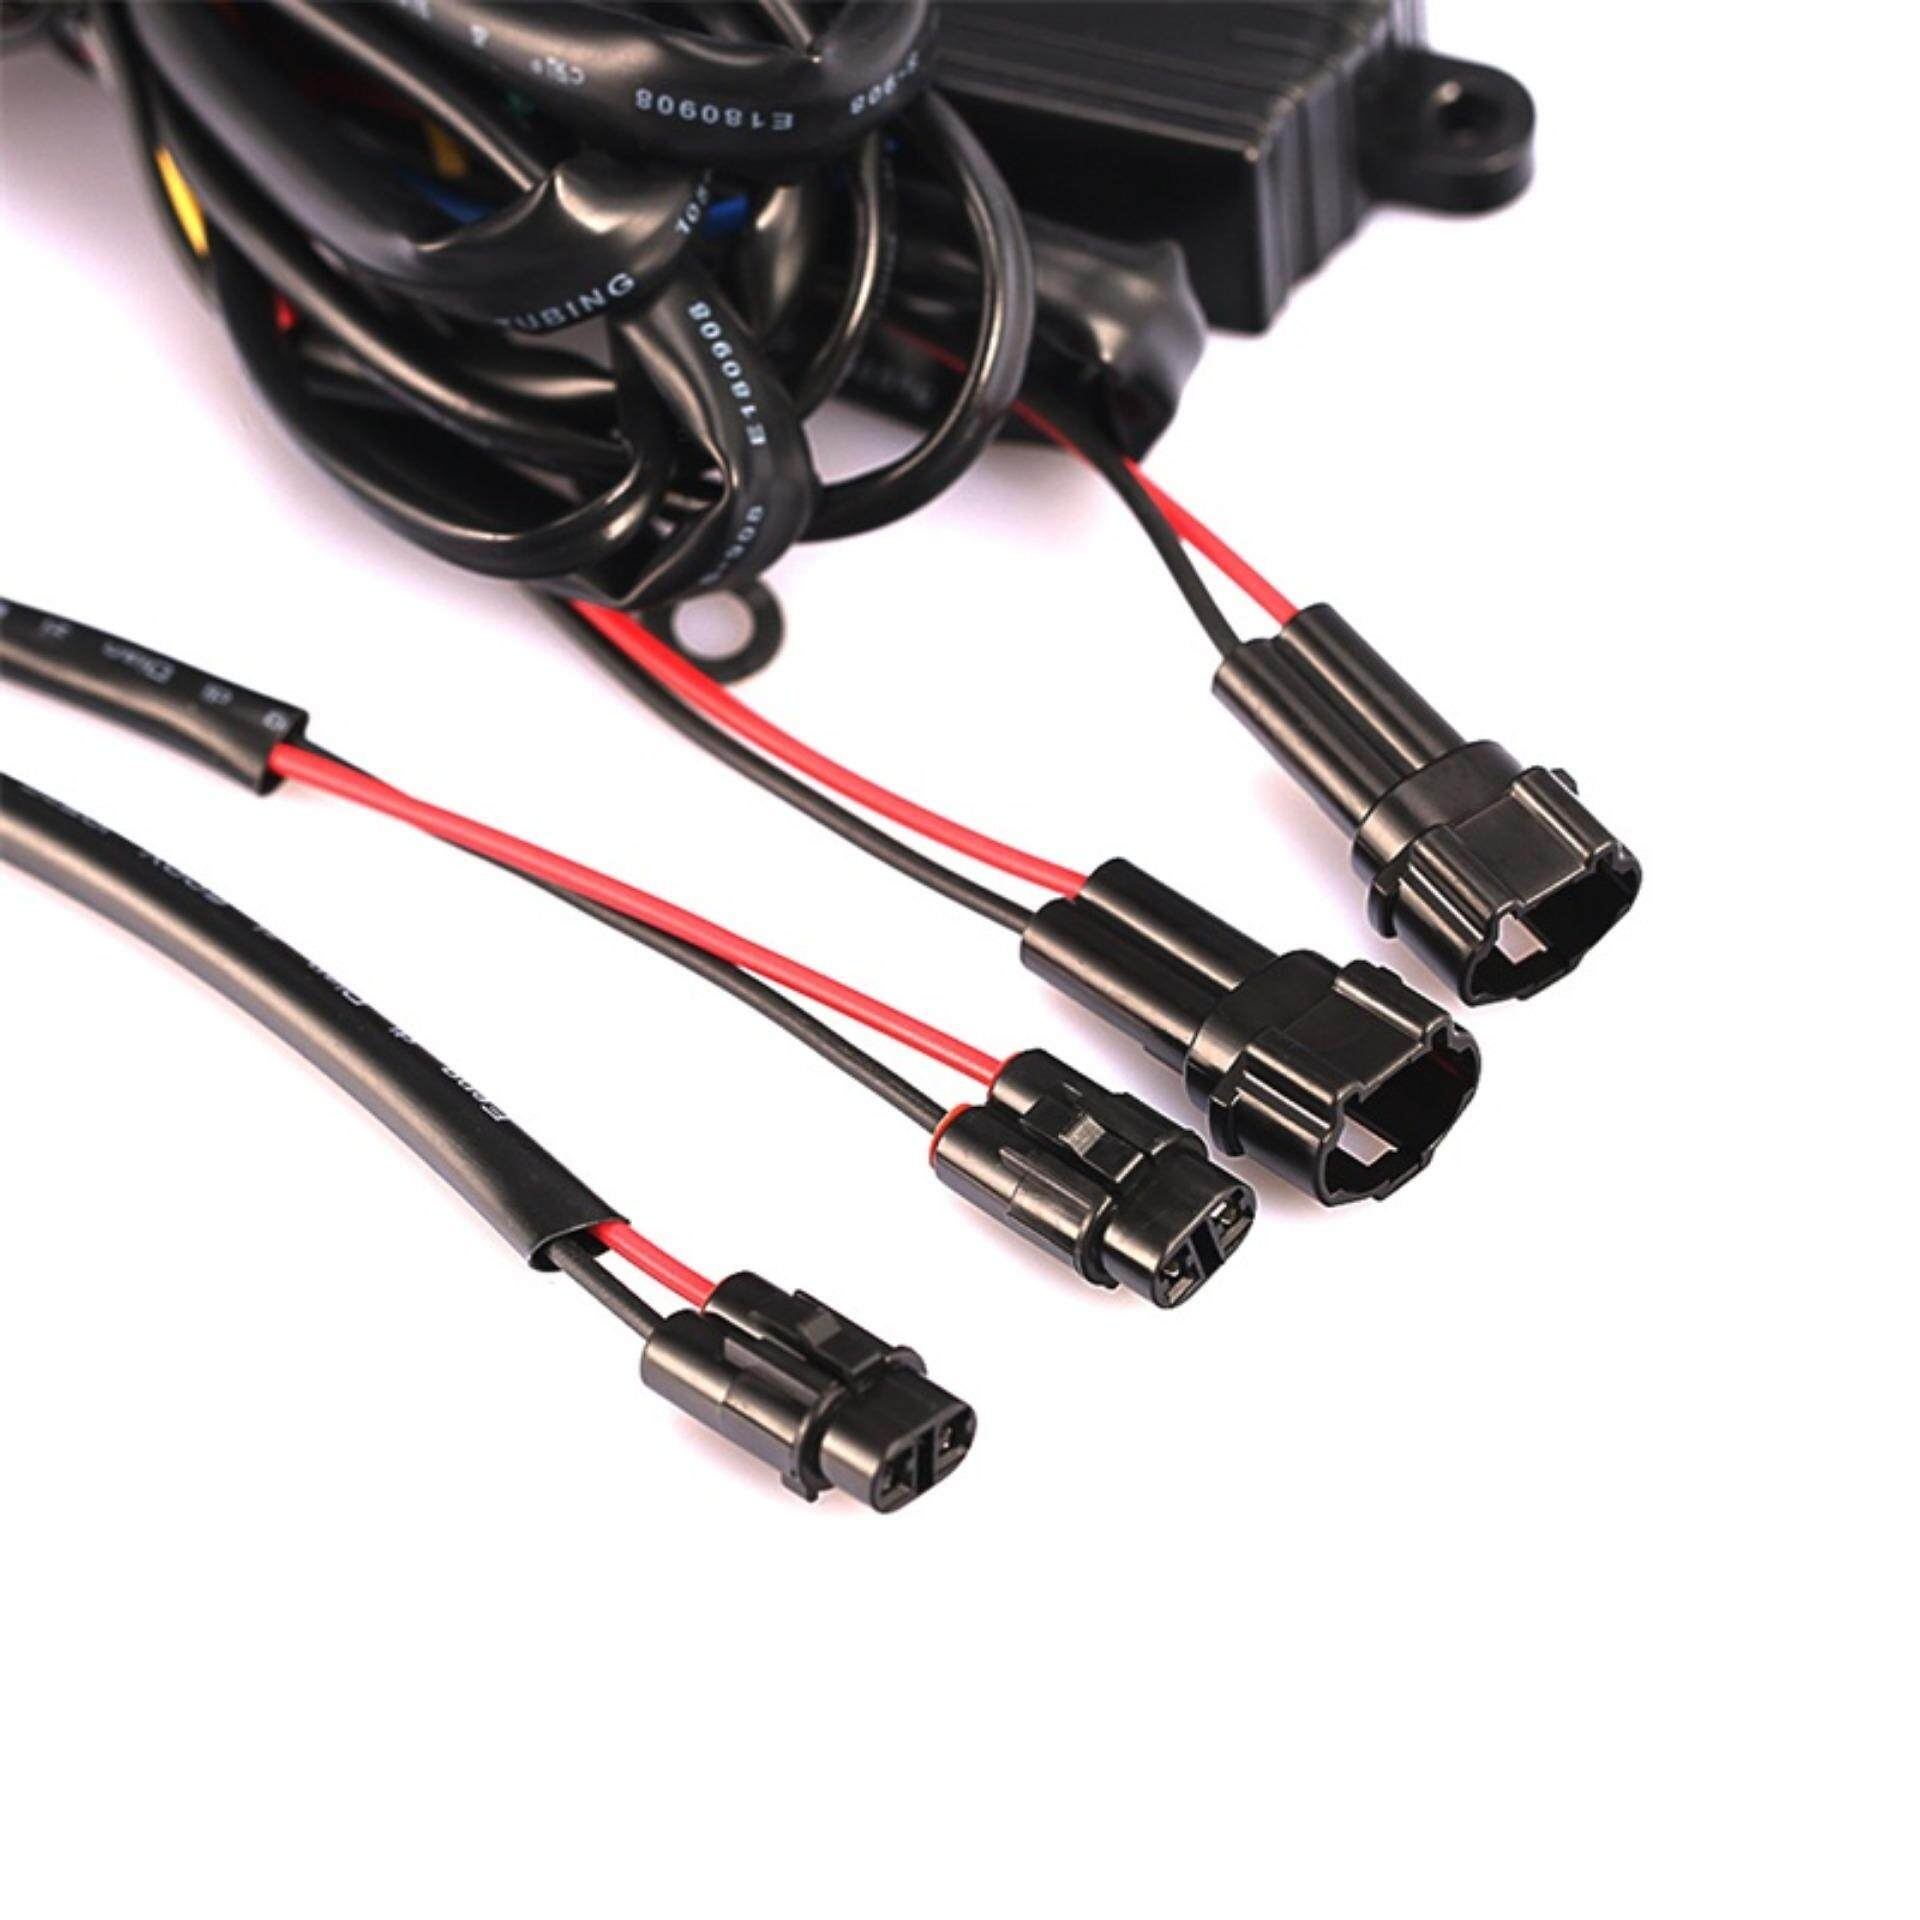 Features Drl Led Daytime Running Light Relay Harness Automatic On Switch Wiring Detail Gambar Off Control 12v Terbaru